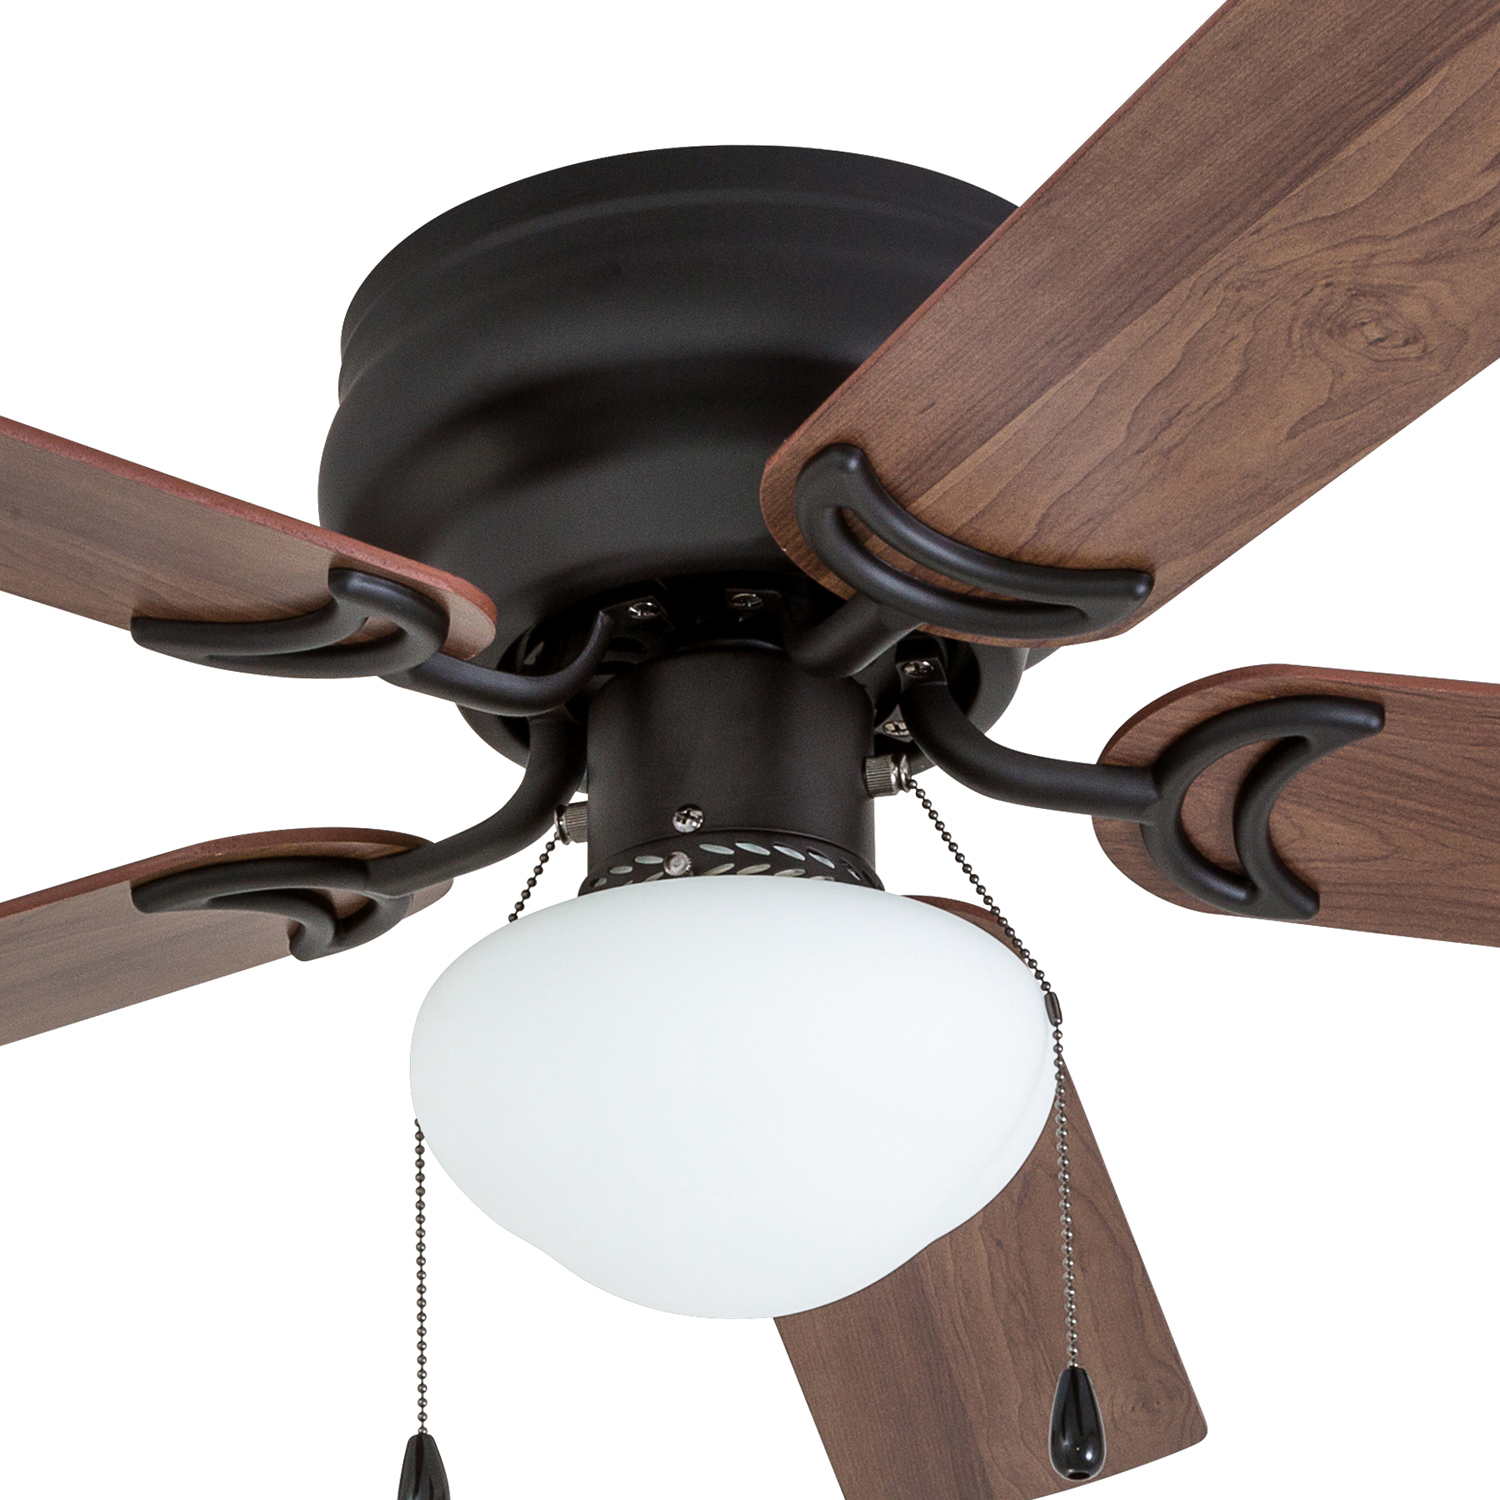 Good Fan For The Price Works Well